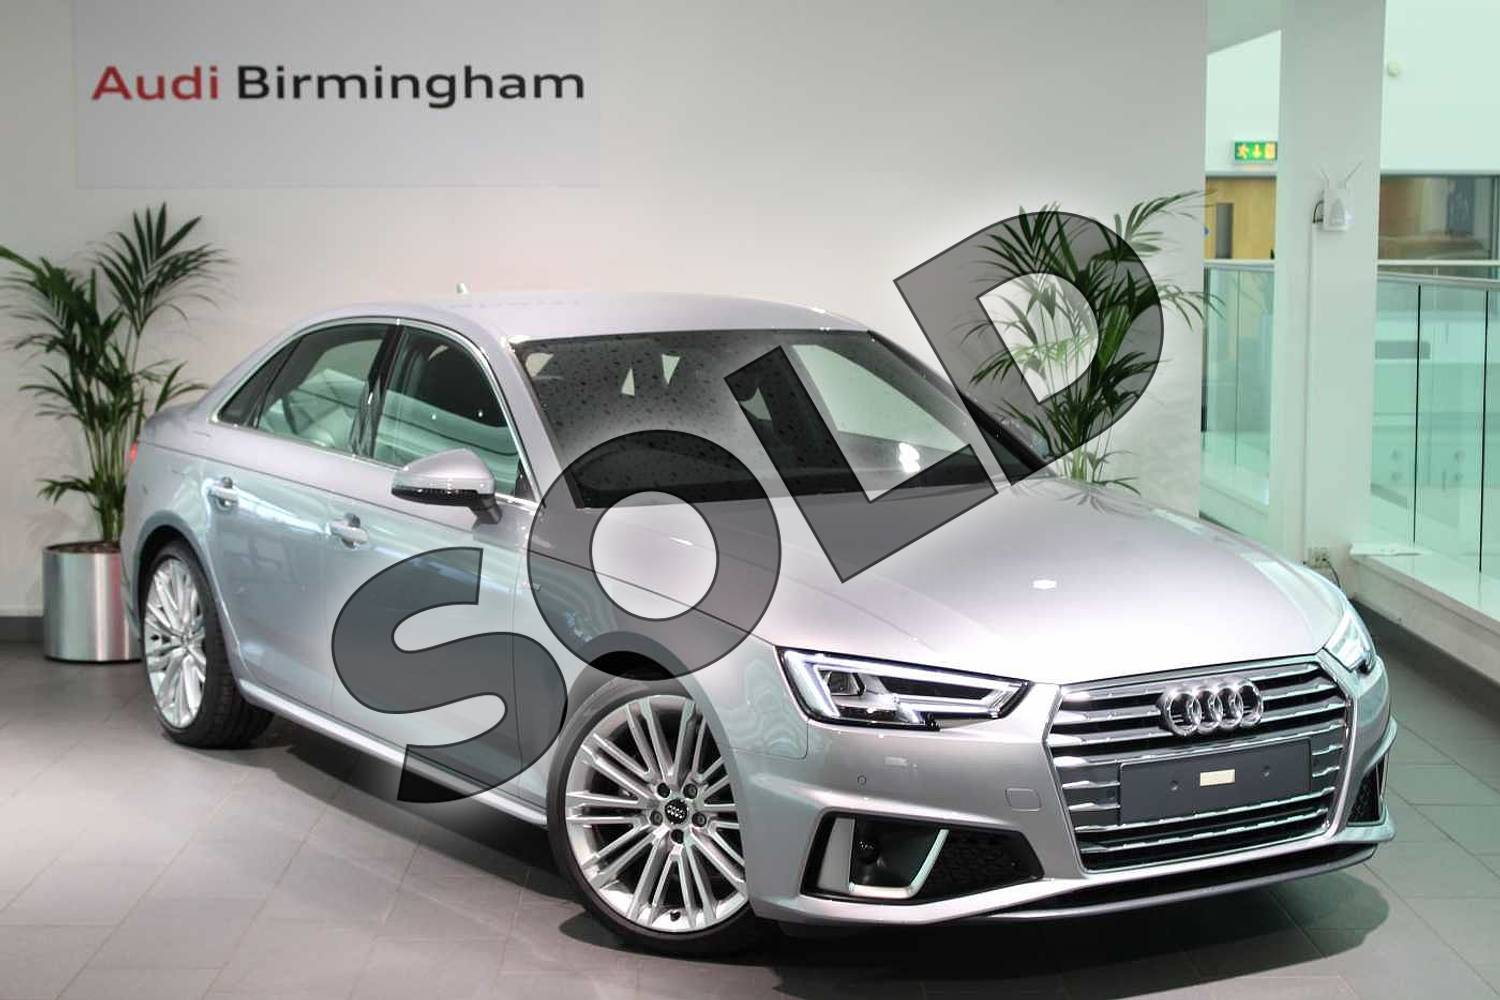 2019 Audi A4 Diesel Saloon 35 TDI S Line 4dr S Tronic in Floret Silver Metallic at Birmingham Audi